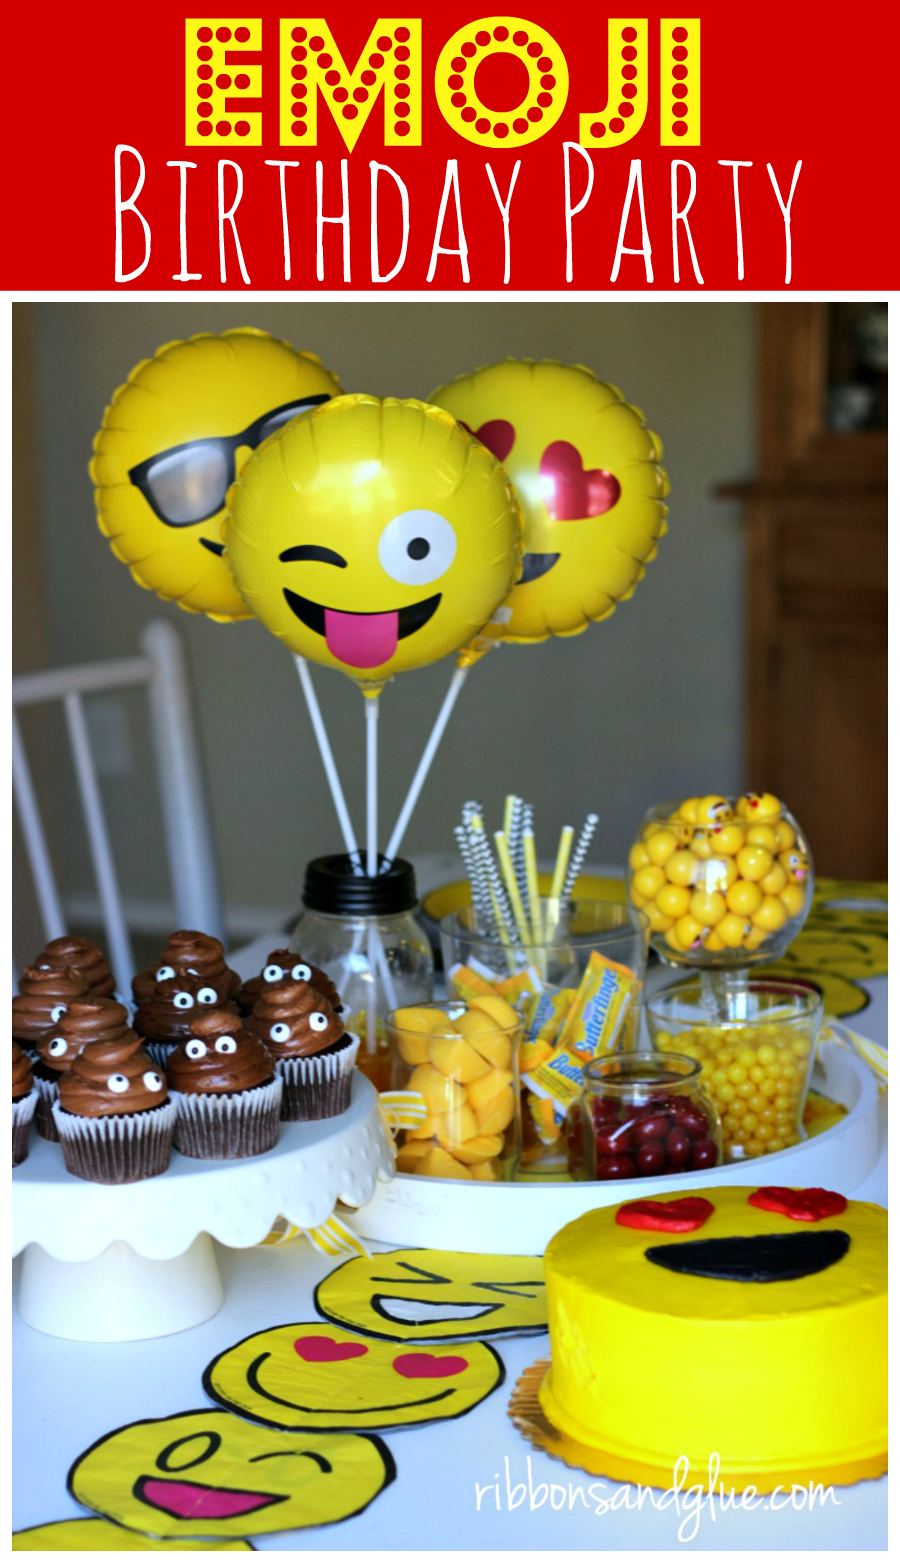 Emoji Birthday Party Table Complete With Decorations Yellow Candy DIY Runner